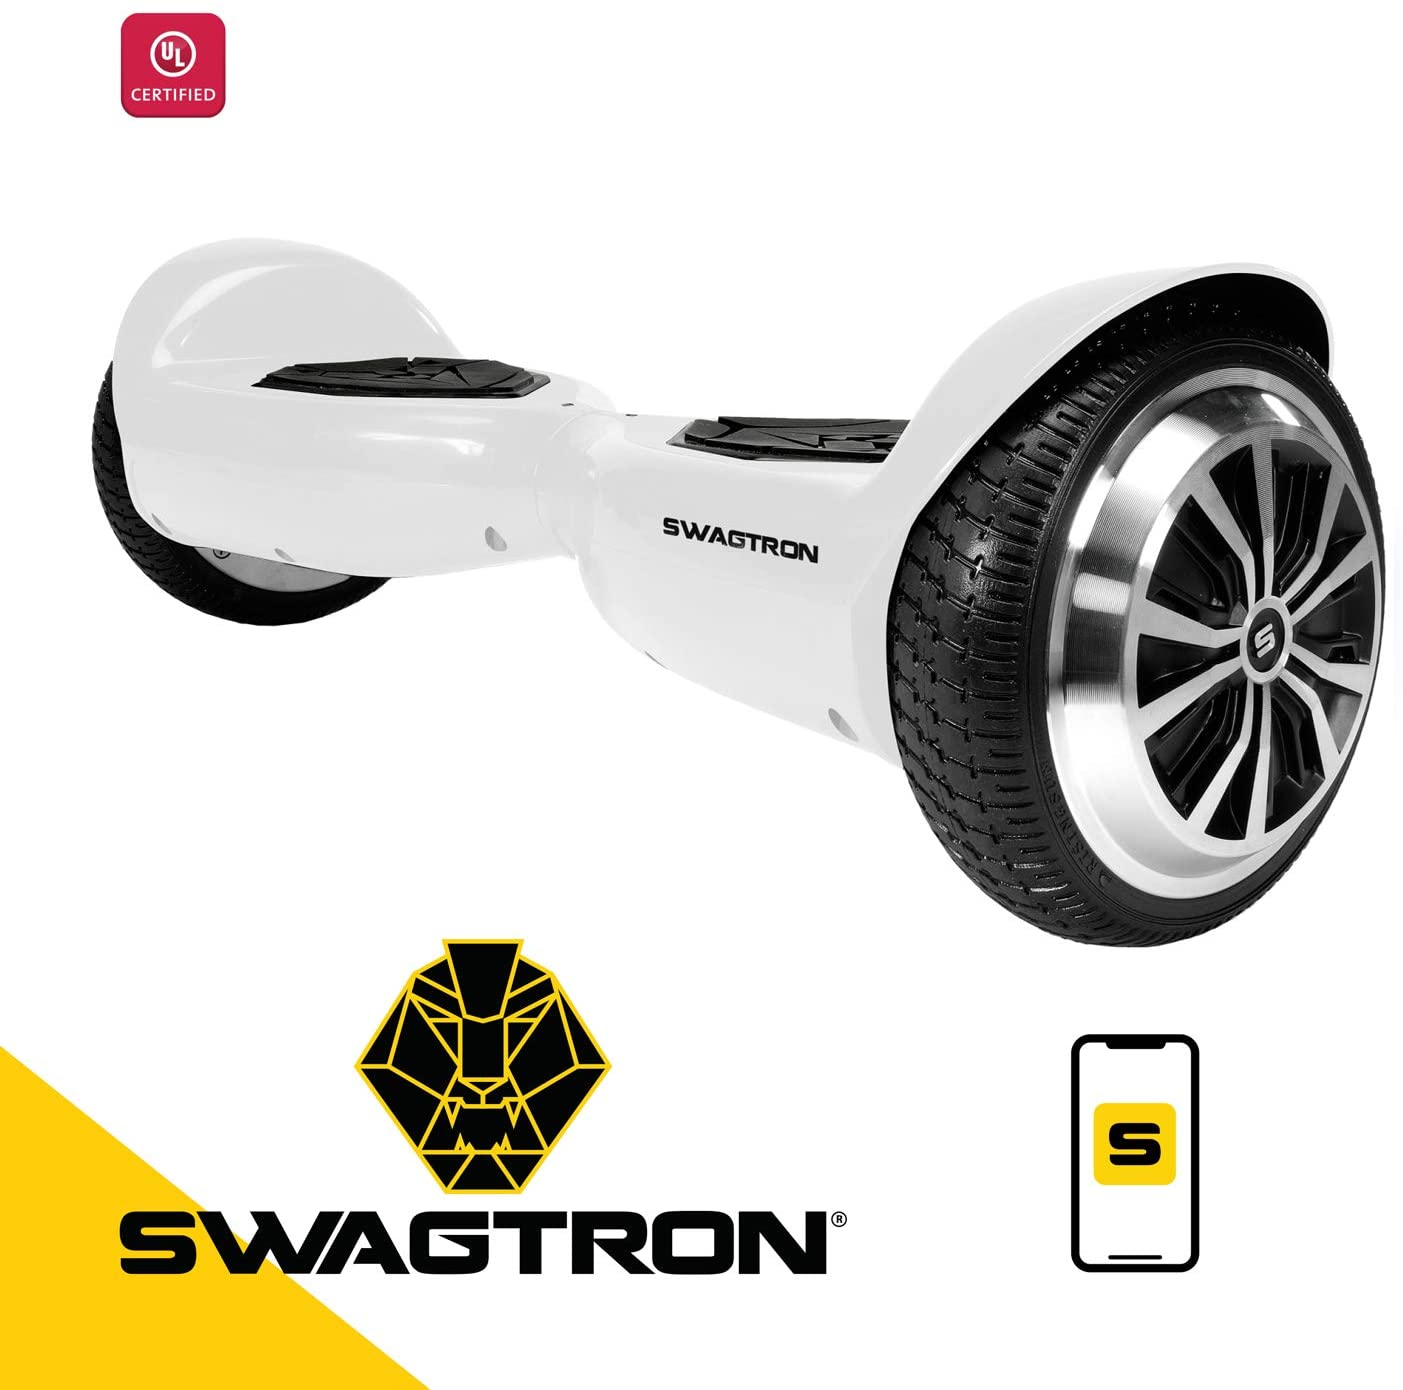 hoverboard guides